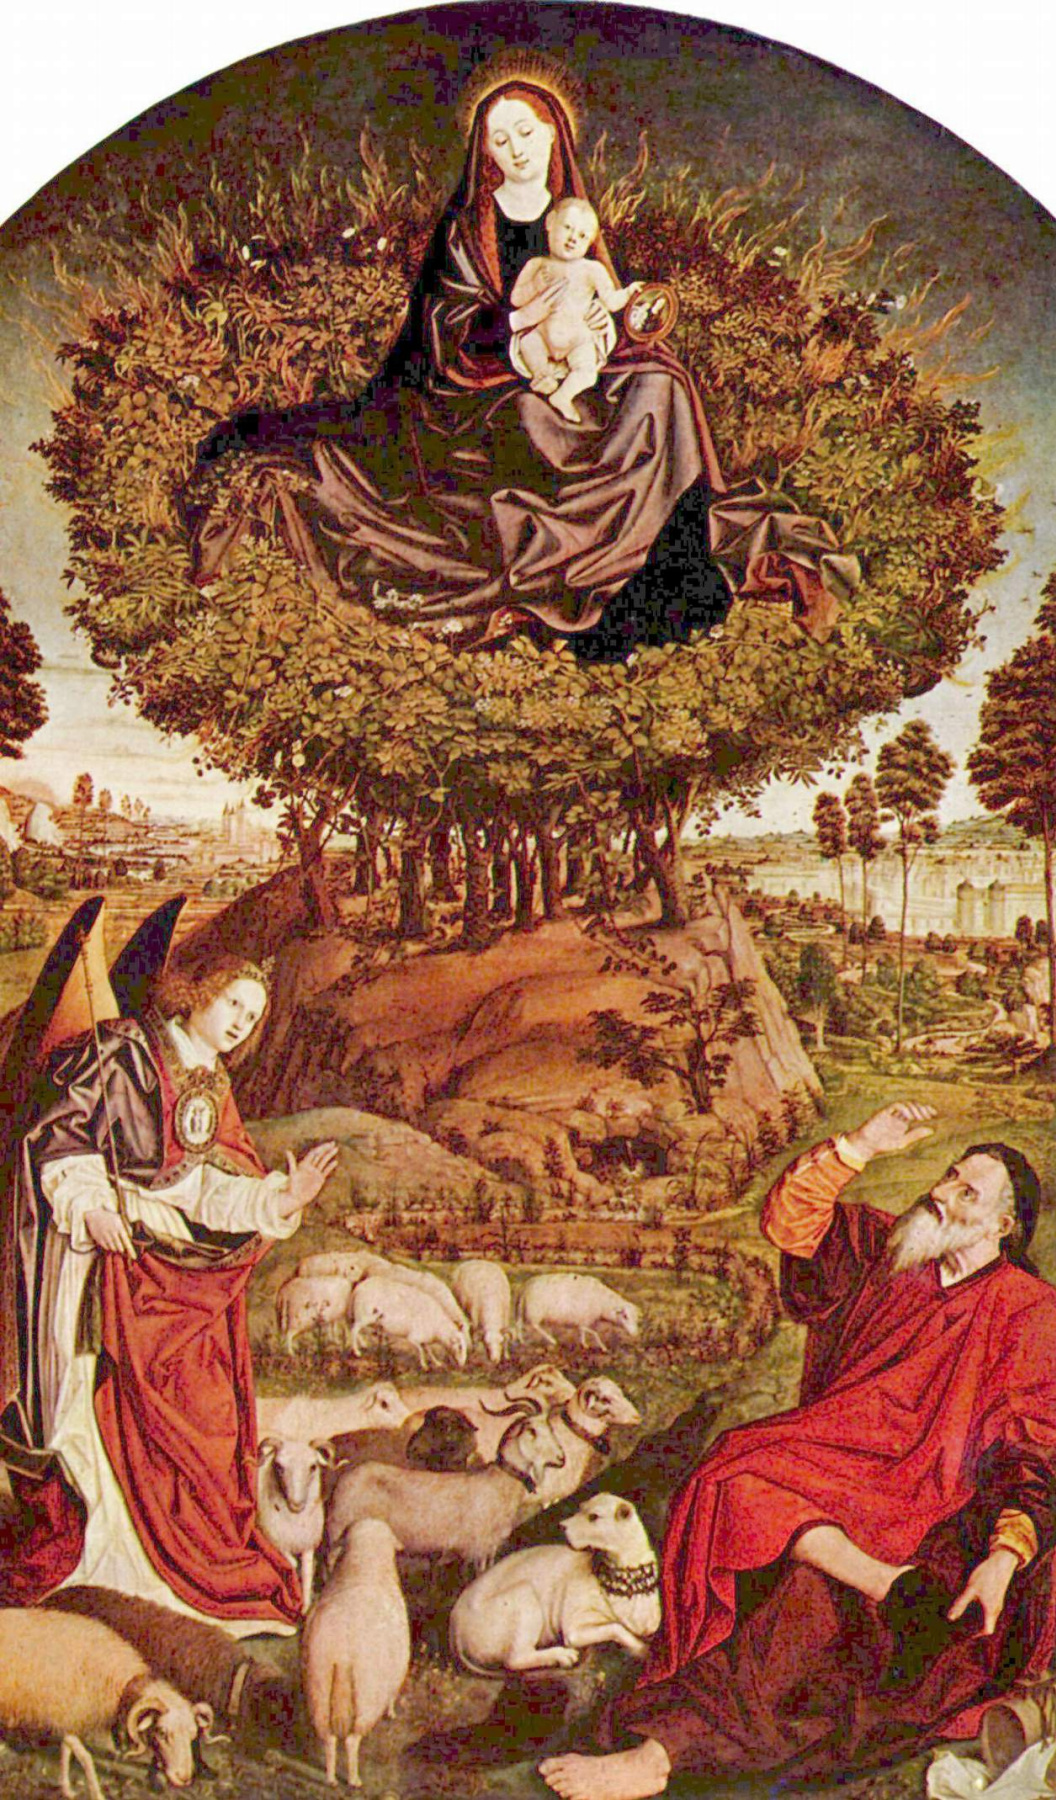 Nicola Froman. Triptych of the burning Bush, the Central part